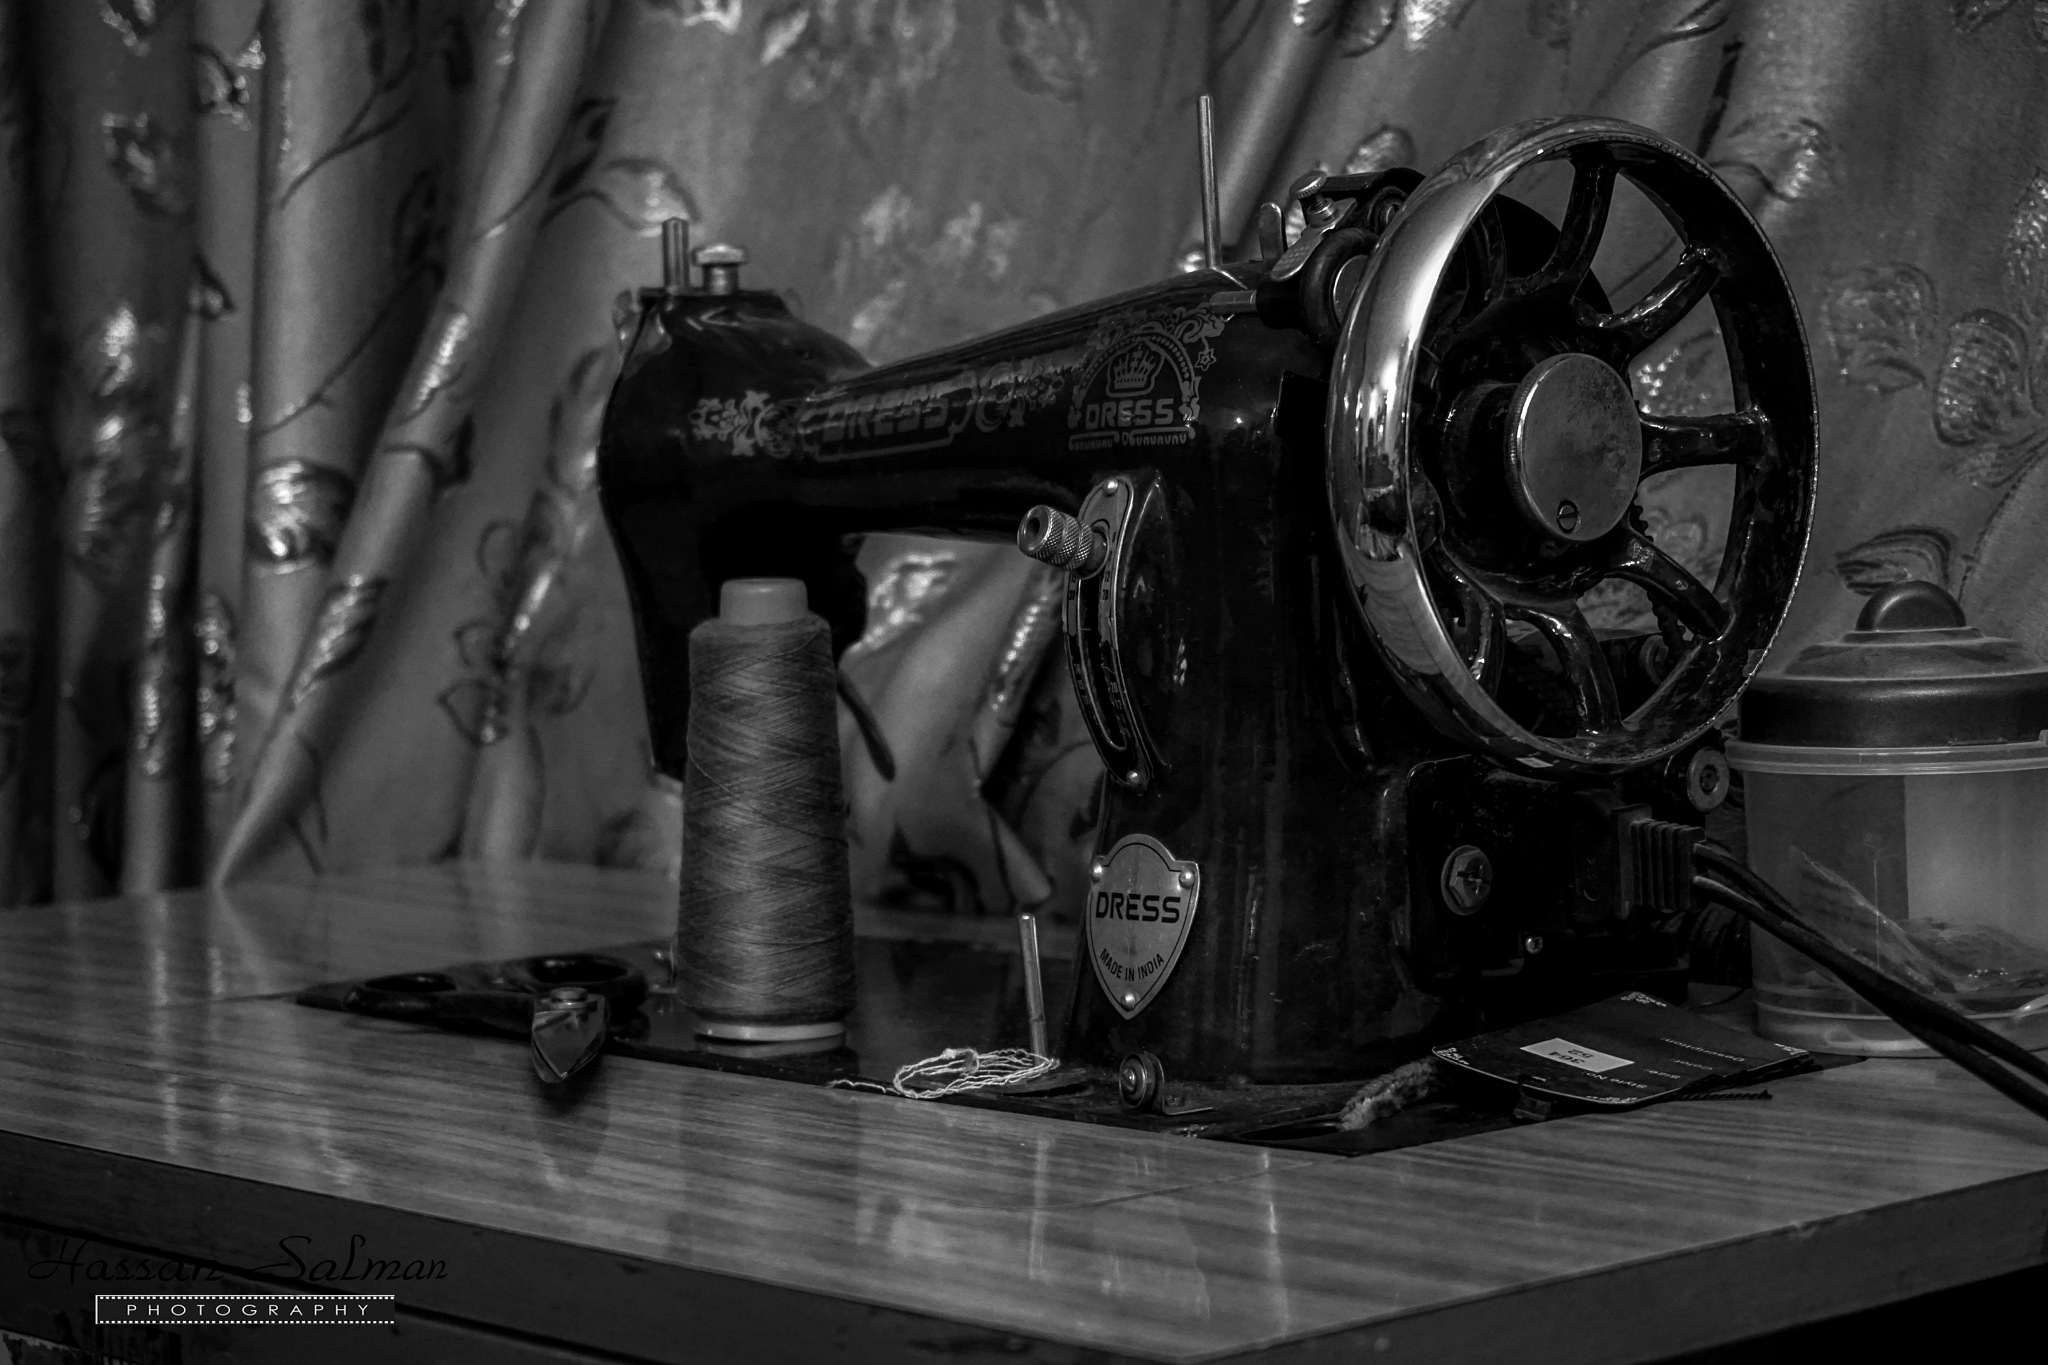 Old sewing machine by hassansalman